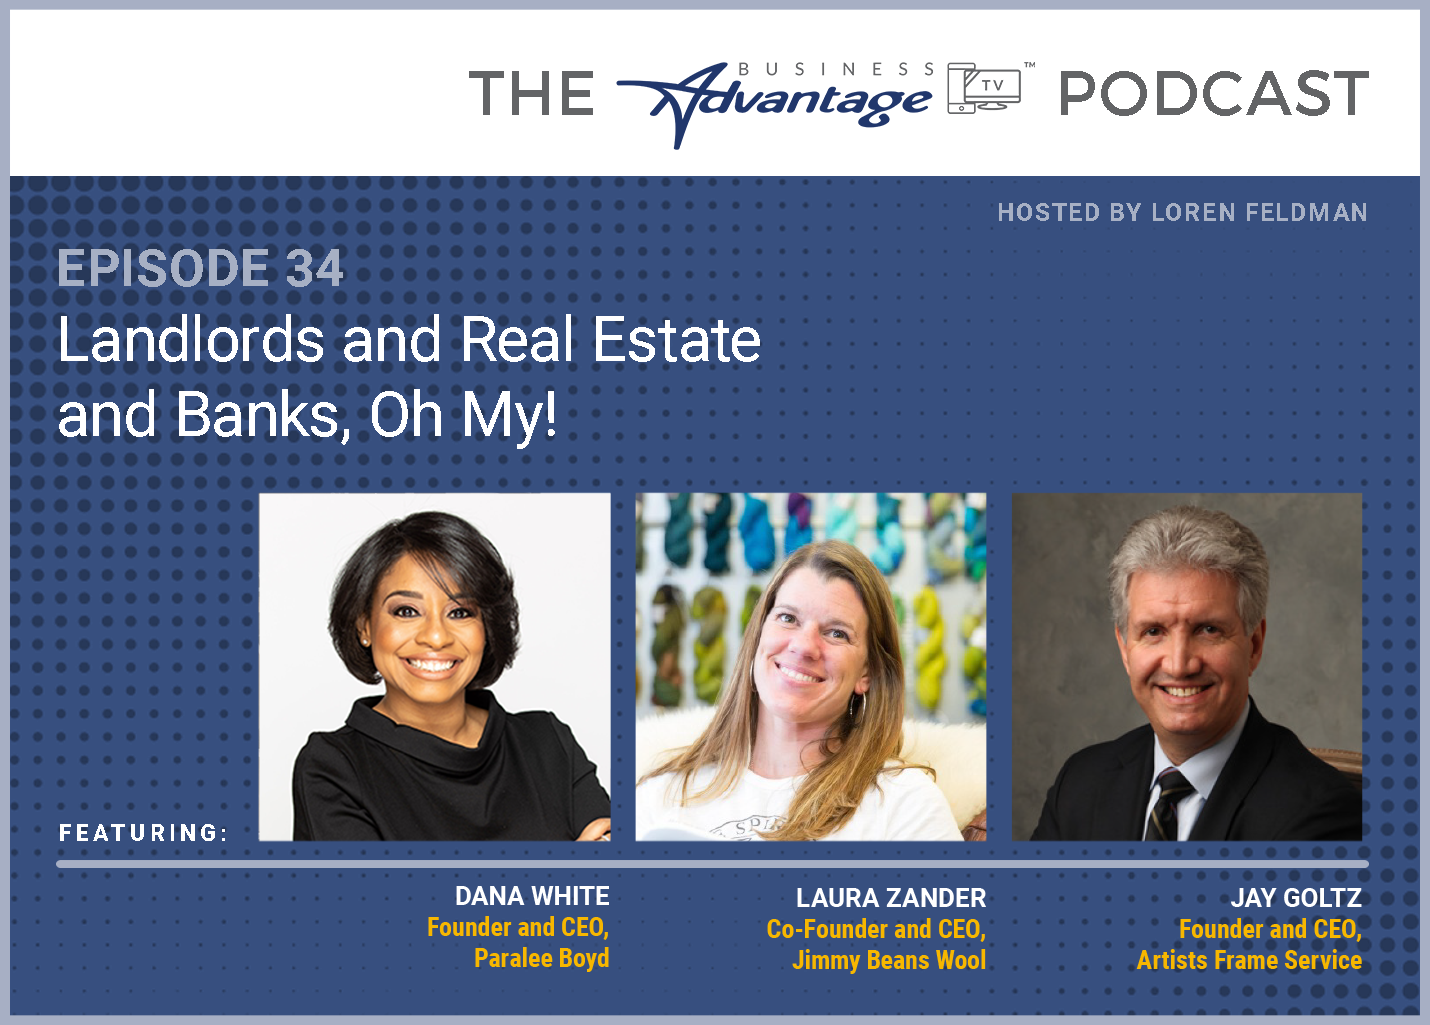 Episode 34: Landlords and Real Estate and Banks, Oh My!